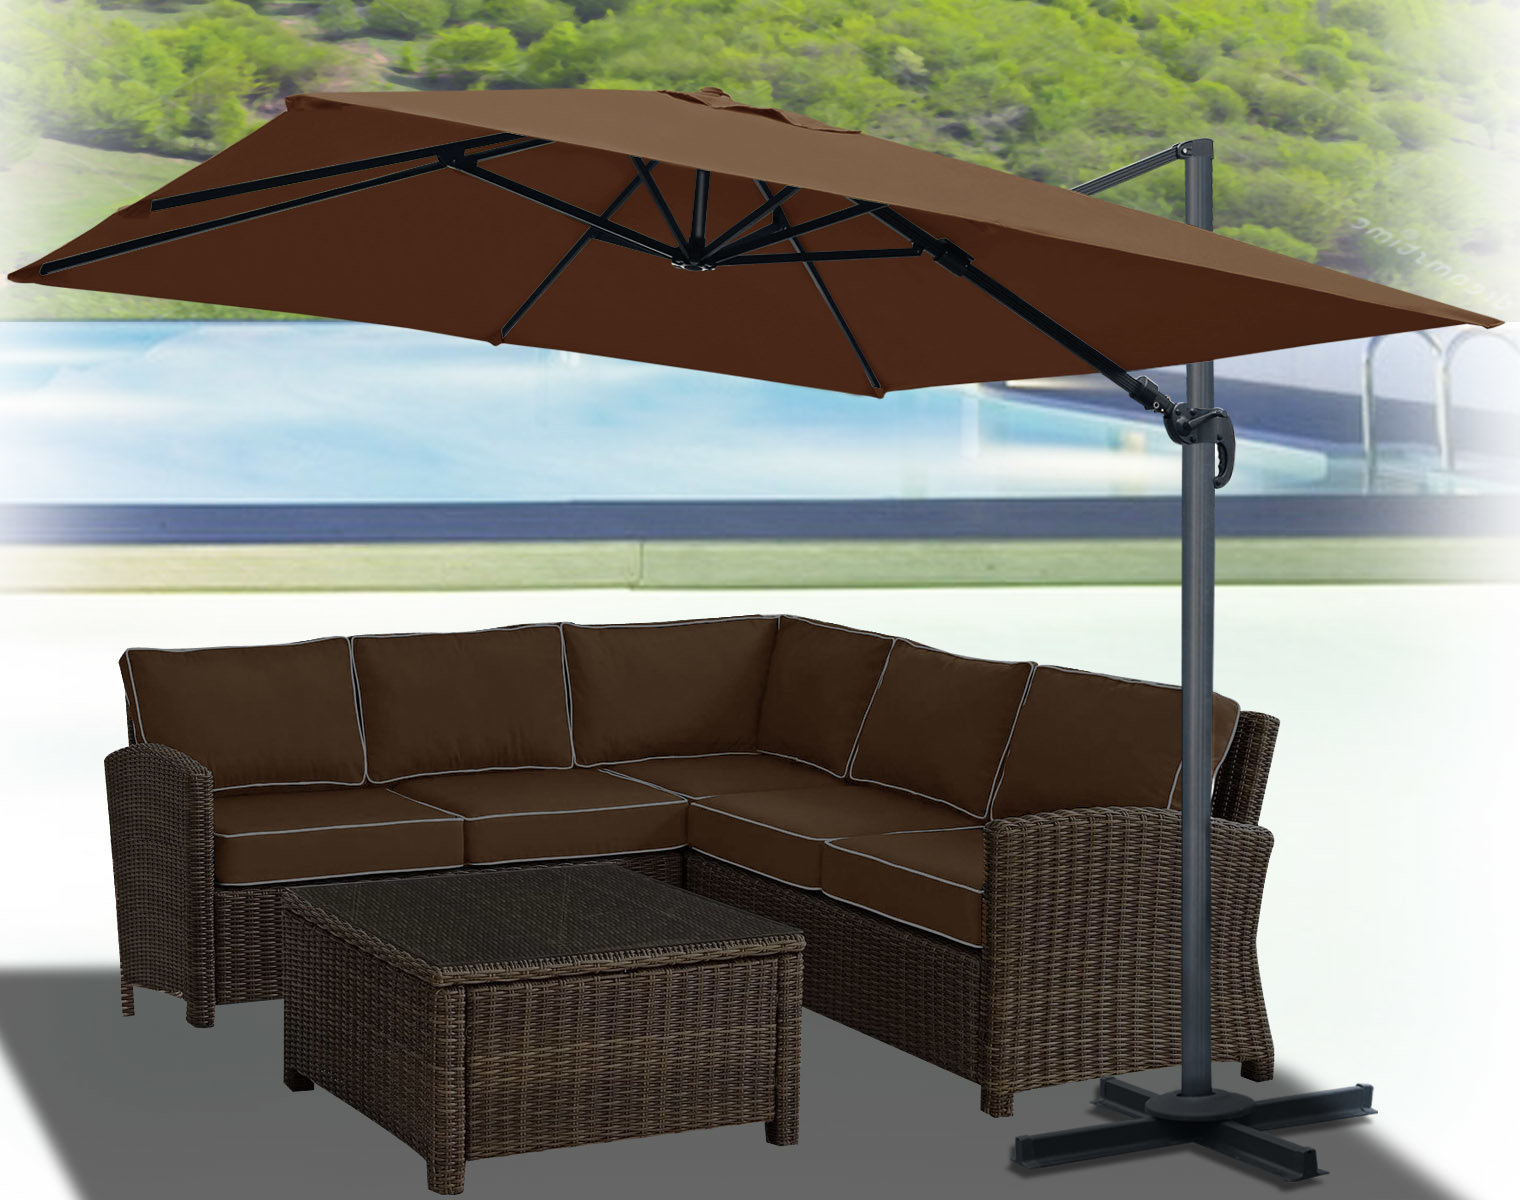 Klass Hanging Patio 10' Square Cantilever Umbrella Regarding Fashionable Spitler Square Cantilever Umbrellas (View 4 of 20)